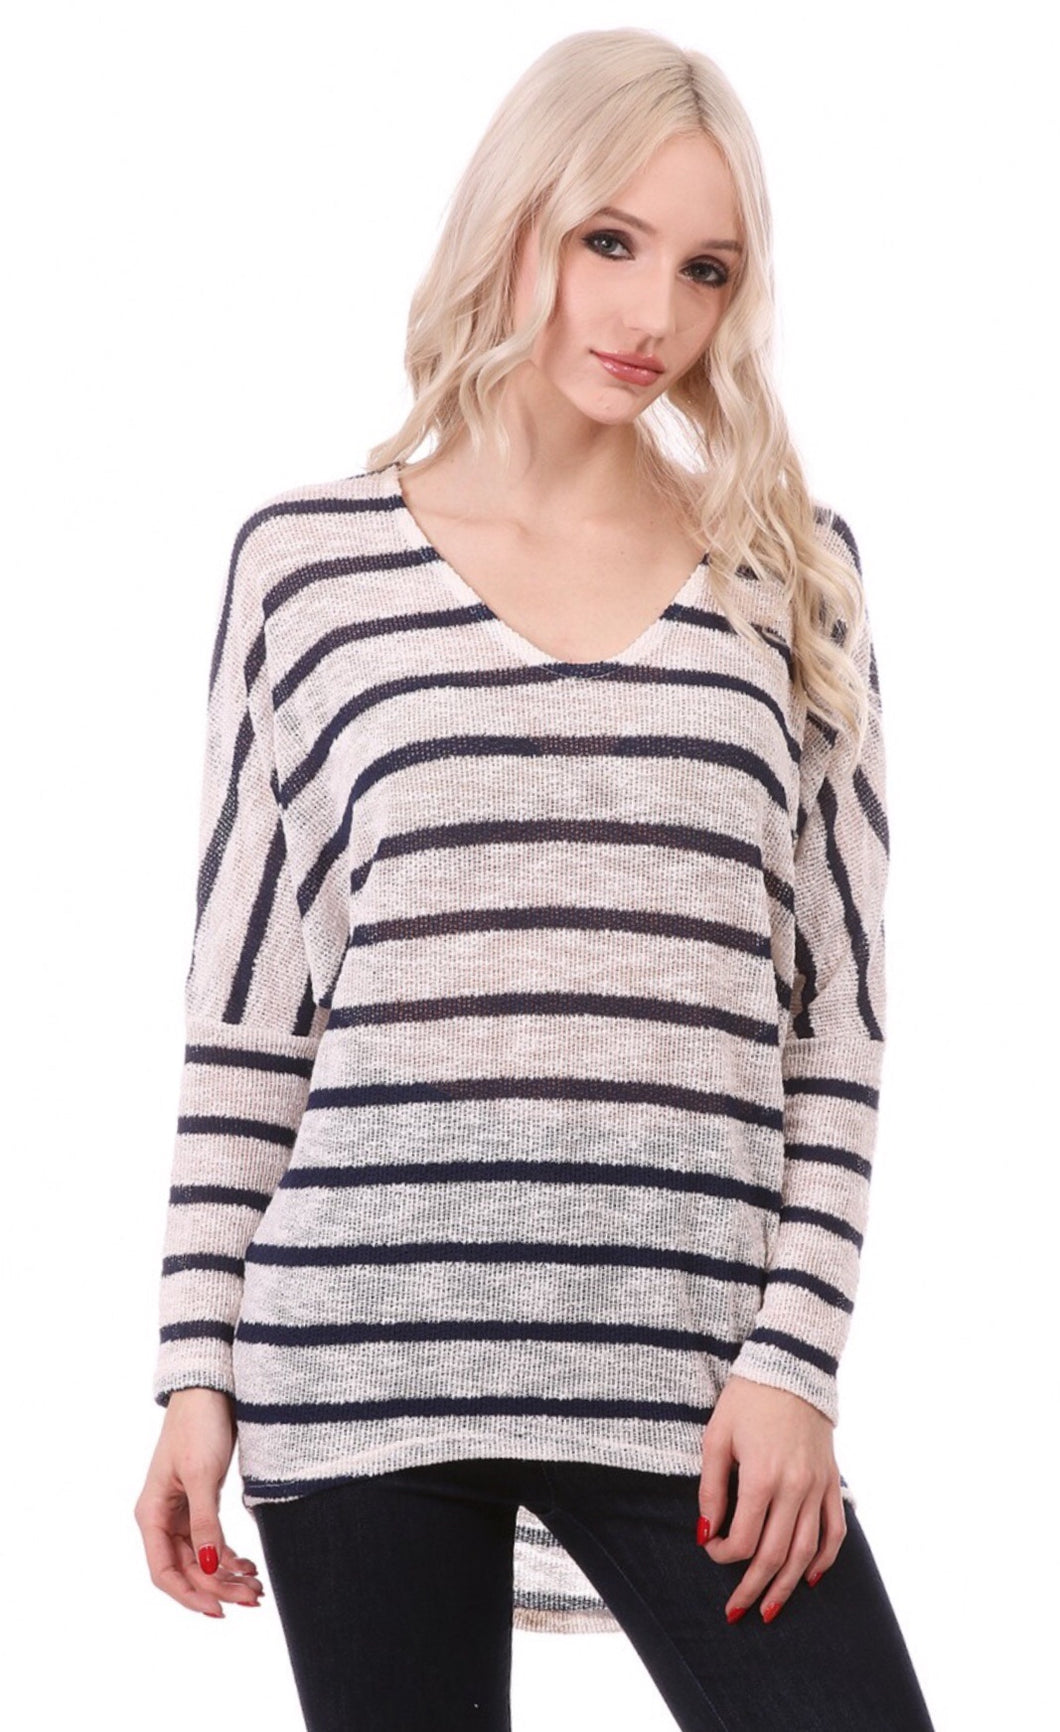 Sublime Striped Top - The Fabulous Rag